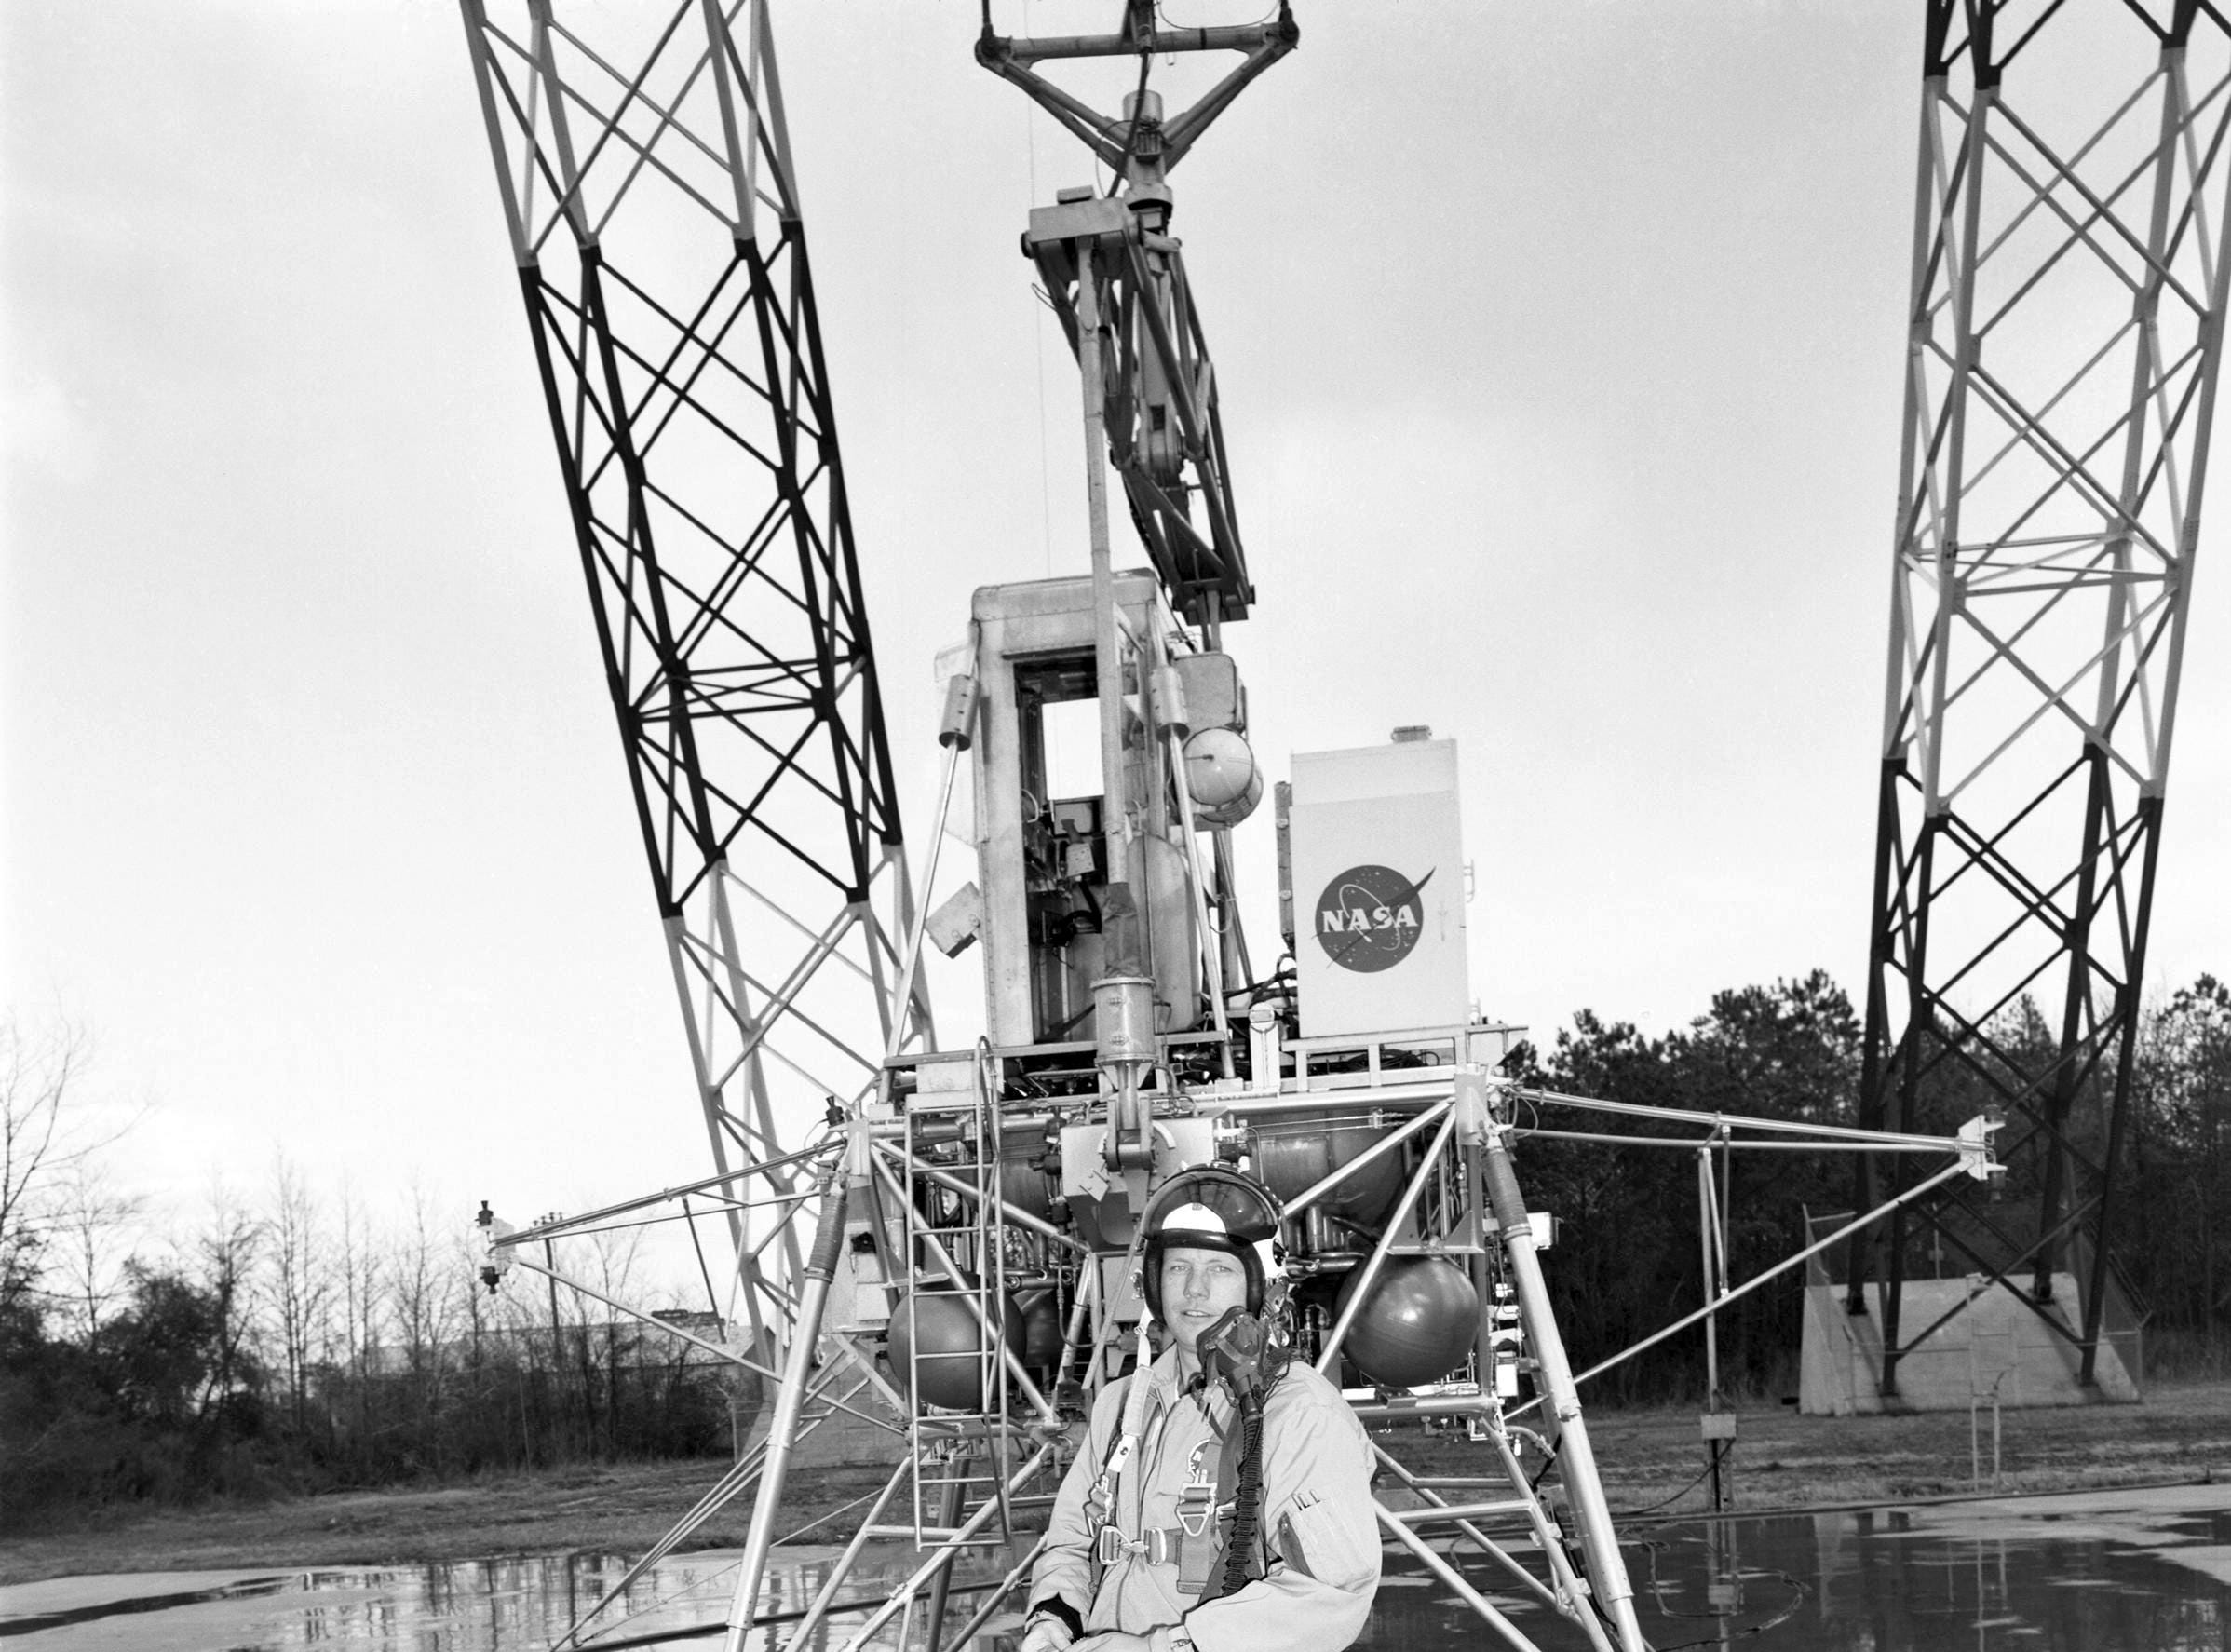 Neil Armstrong trained for the historic Apollo 11 mission at the Lunar Landing Research Facility. This picture was taken in February 1969 - just five months before Armstrong would become the first person to set foot on the surface of the moon.